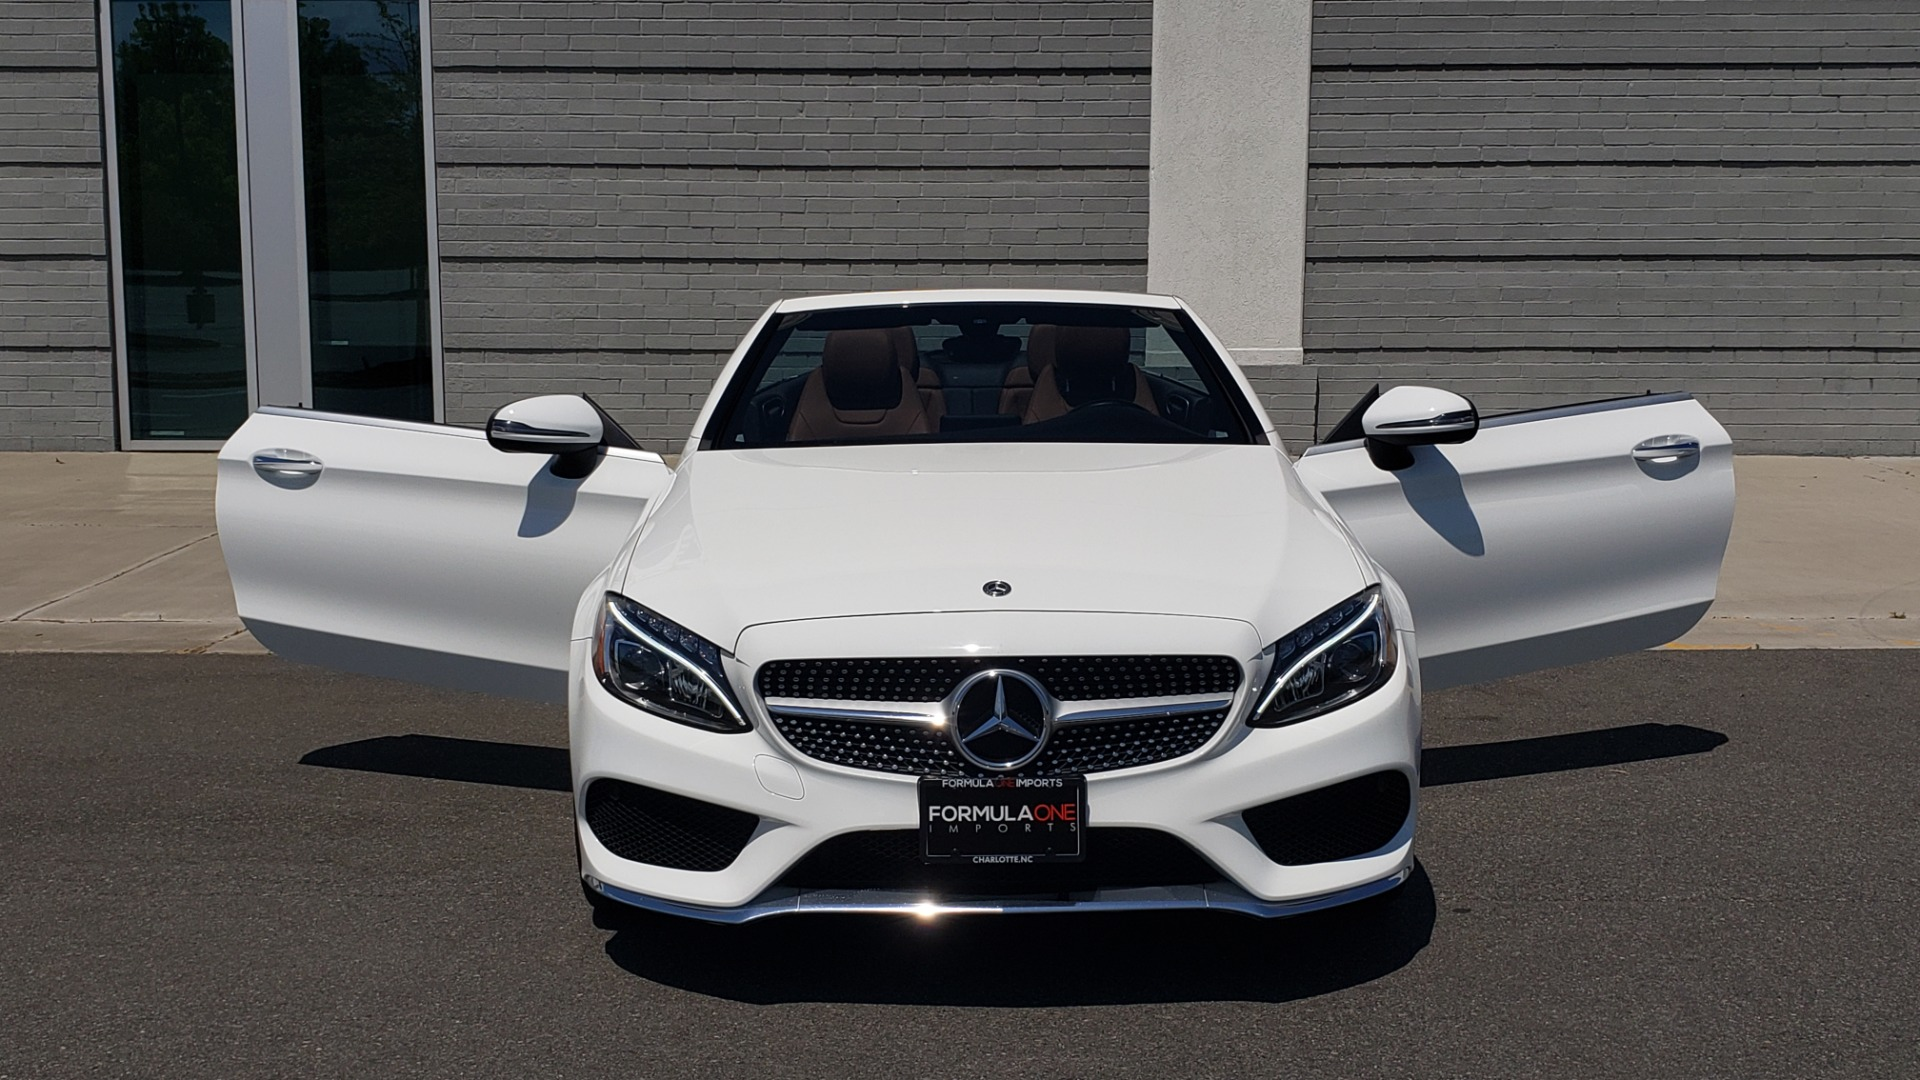 Used 2018 Mercedes-Benz C-CLASS C 300 CABRIOLET PREMIUM / AWD / BURMESTER SND / APPLE / REARVIEW for sale $44,995 at Formula Imports in Charlotte NC 28227 36